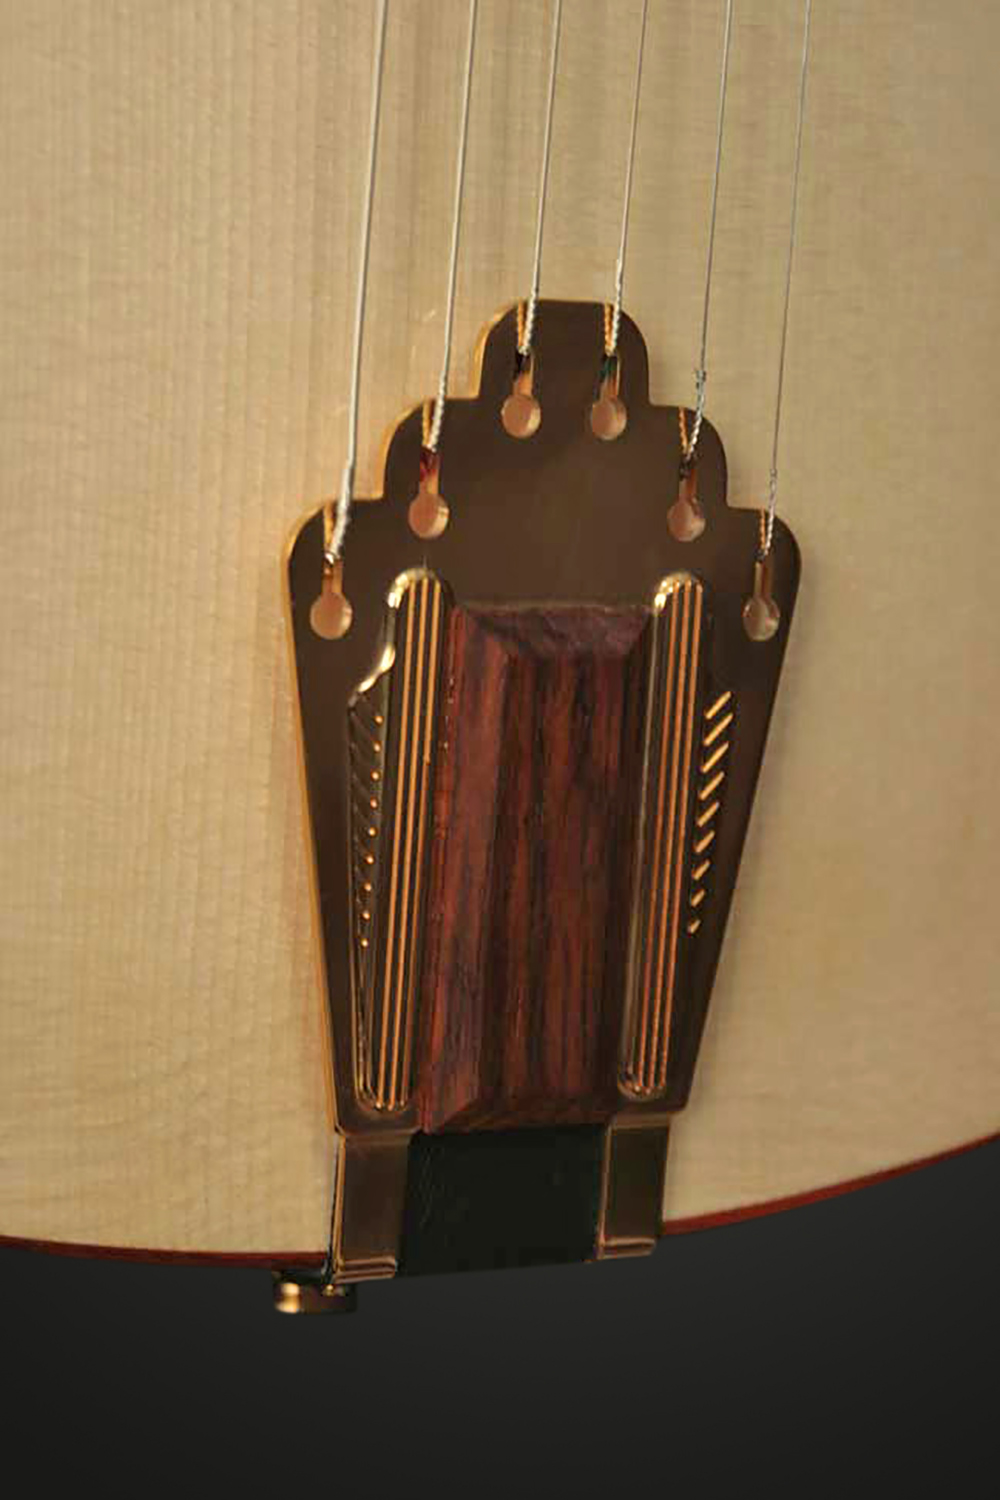 ARCHTOP GYPSY TAILPIECE